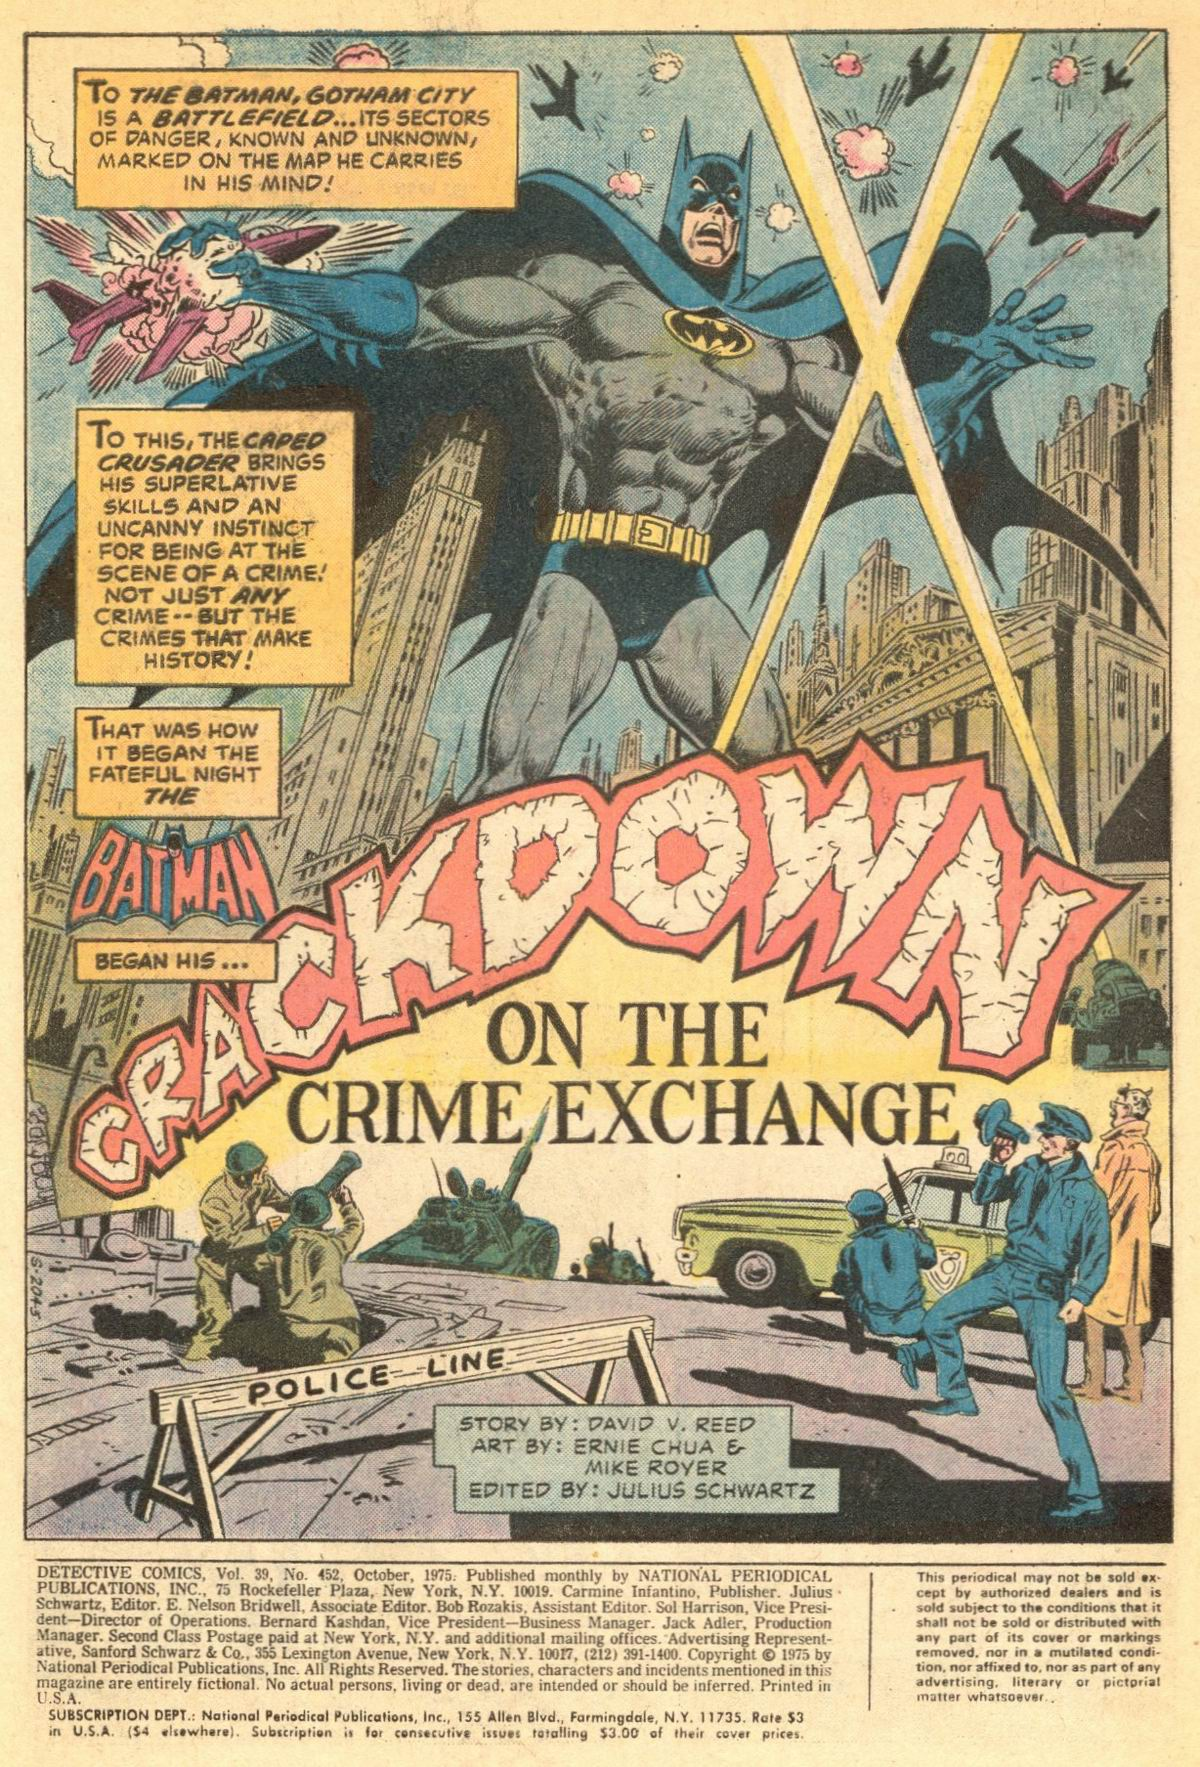 Detective Comics (1937) #452 pg1, penciled by Ernie Chua & inked by Mike Royer.